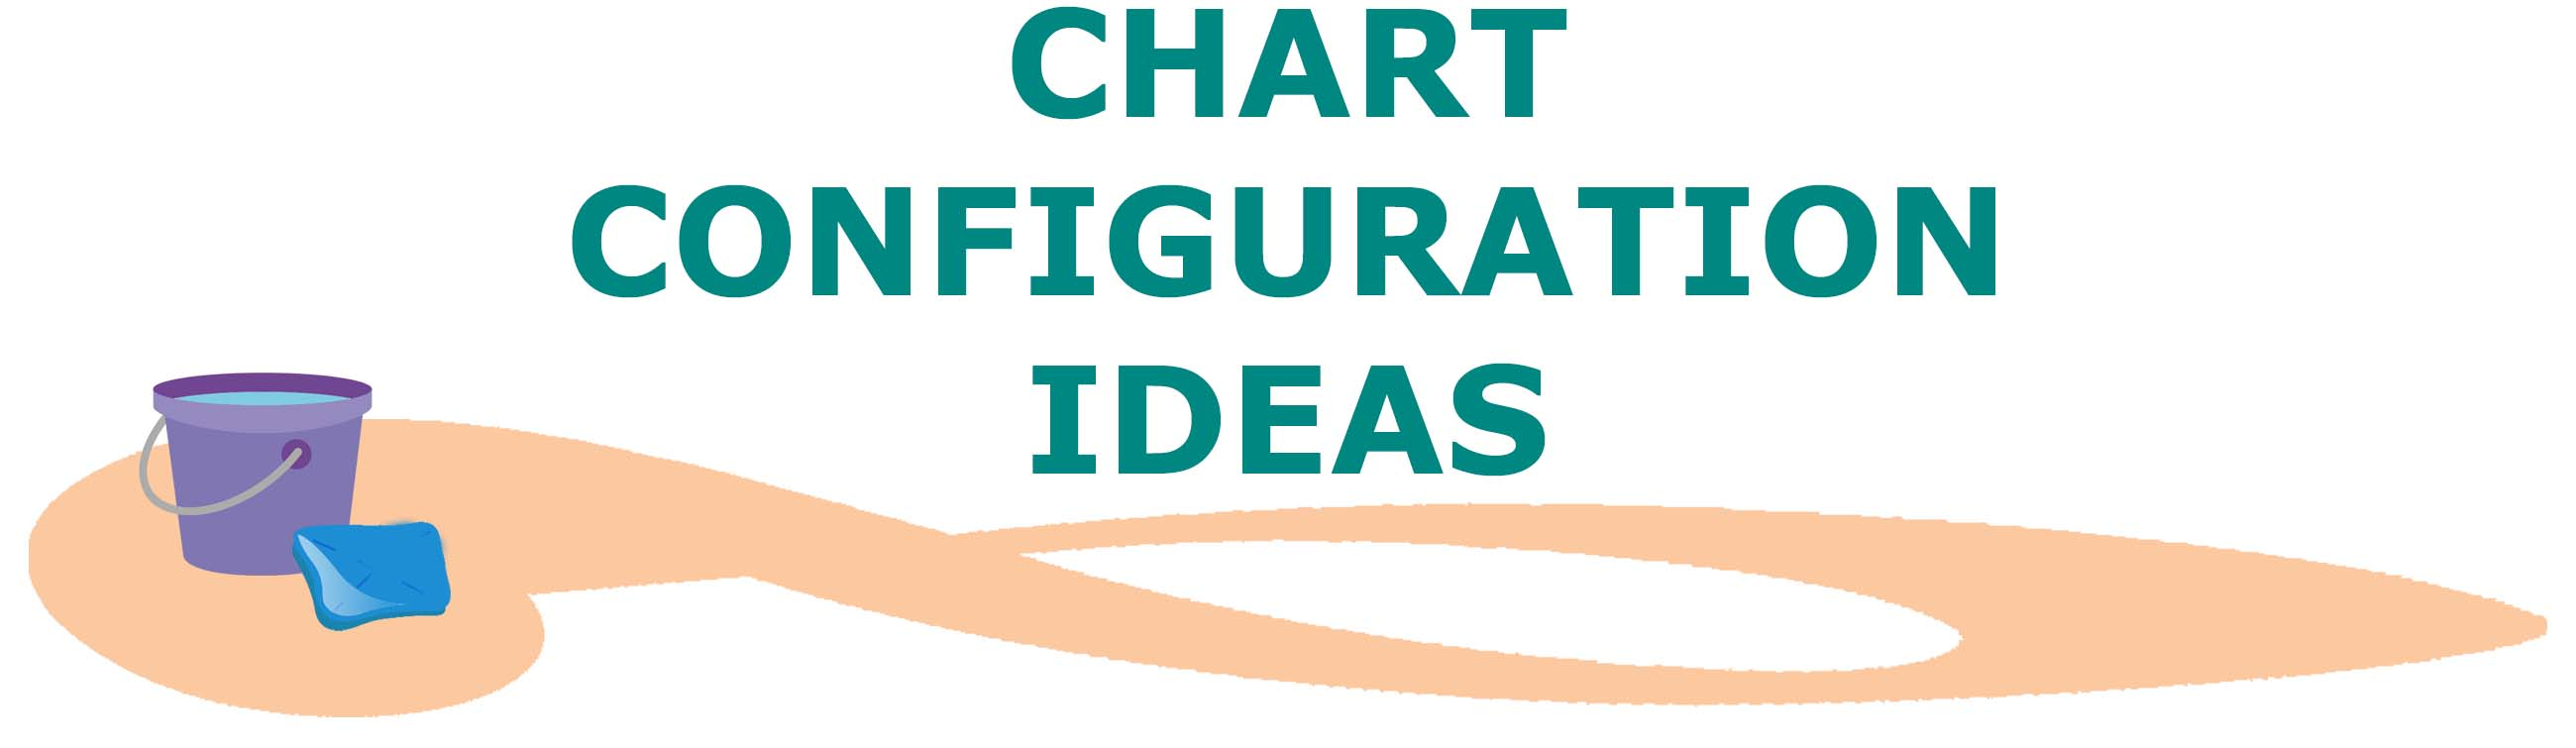 Chart Configurations Ideas - NEATLINGS